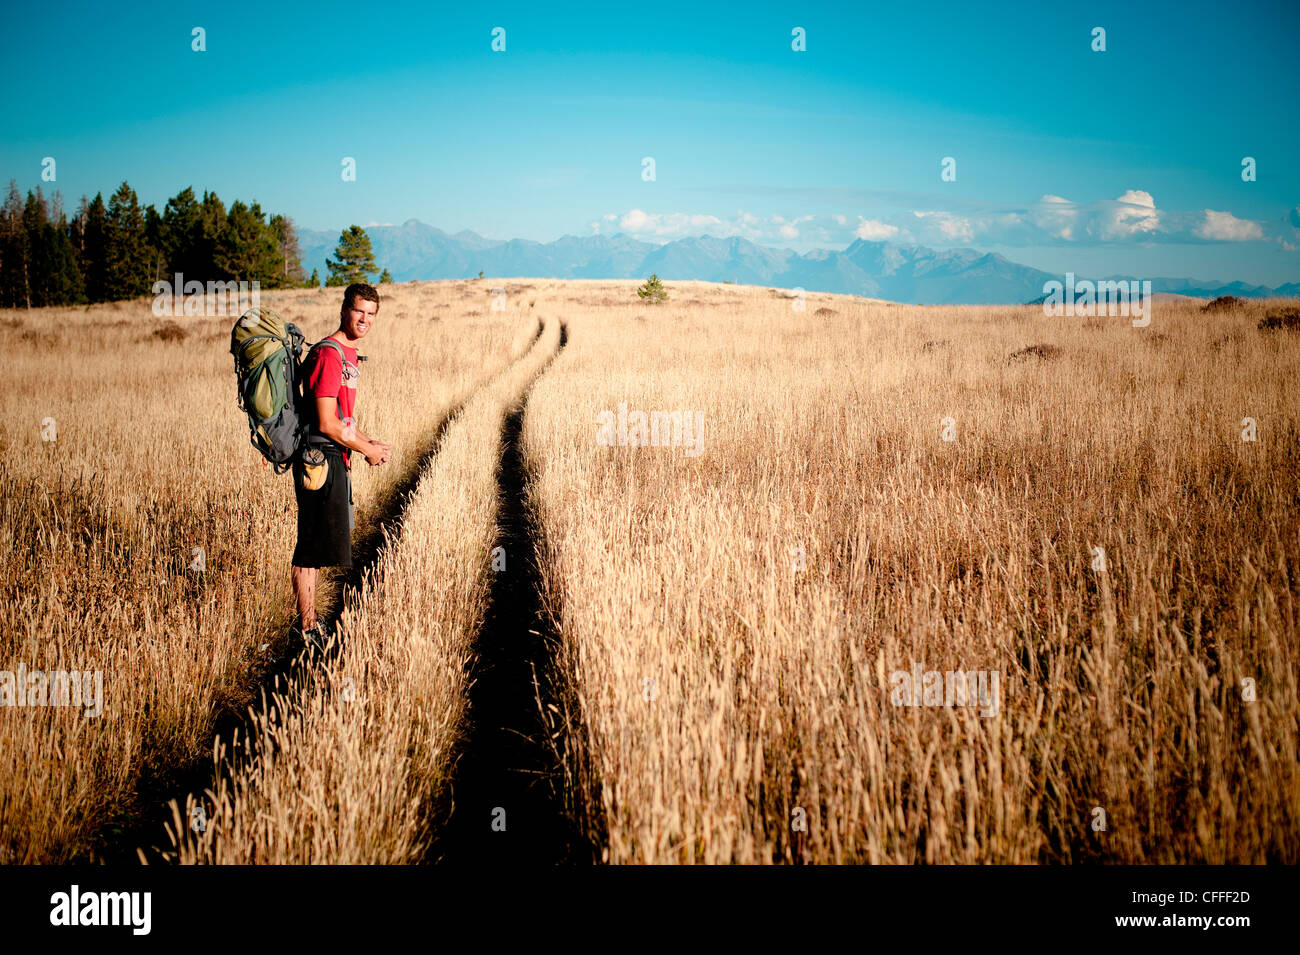 A male hiker in Montana. - Stock Image